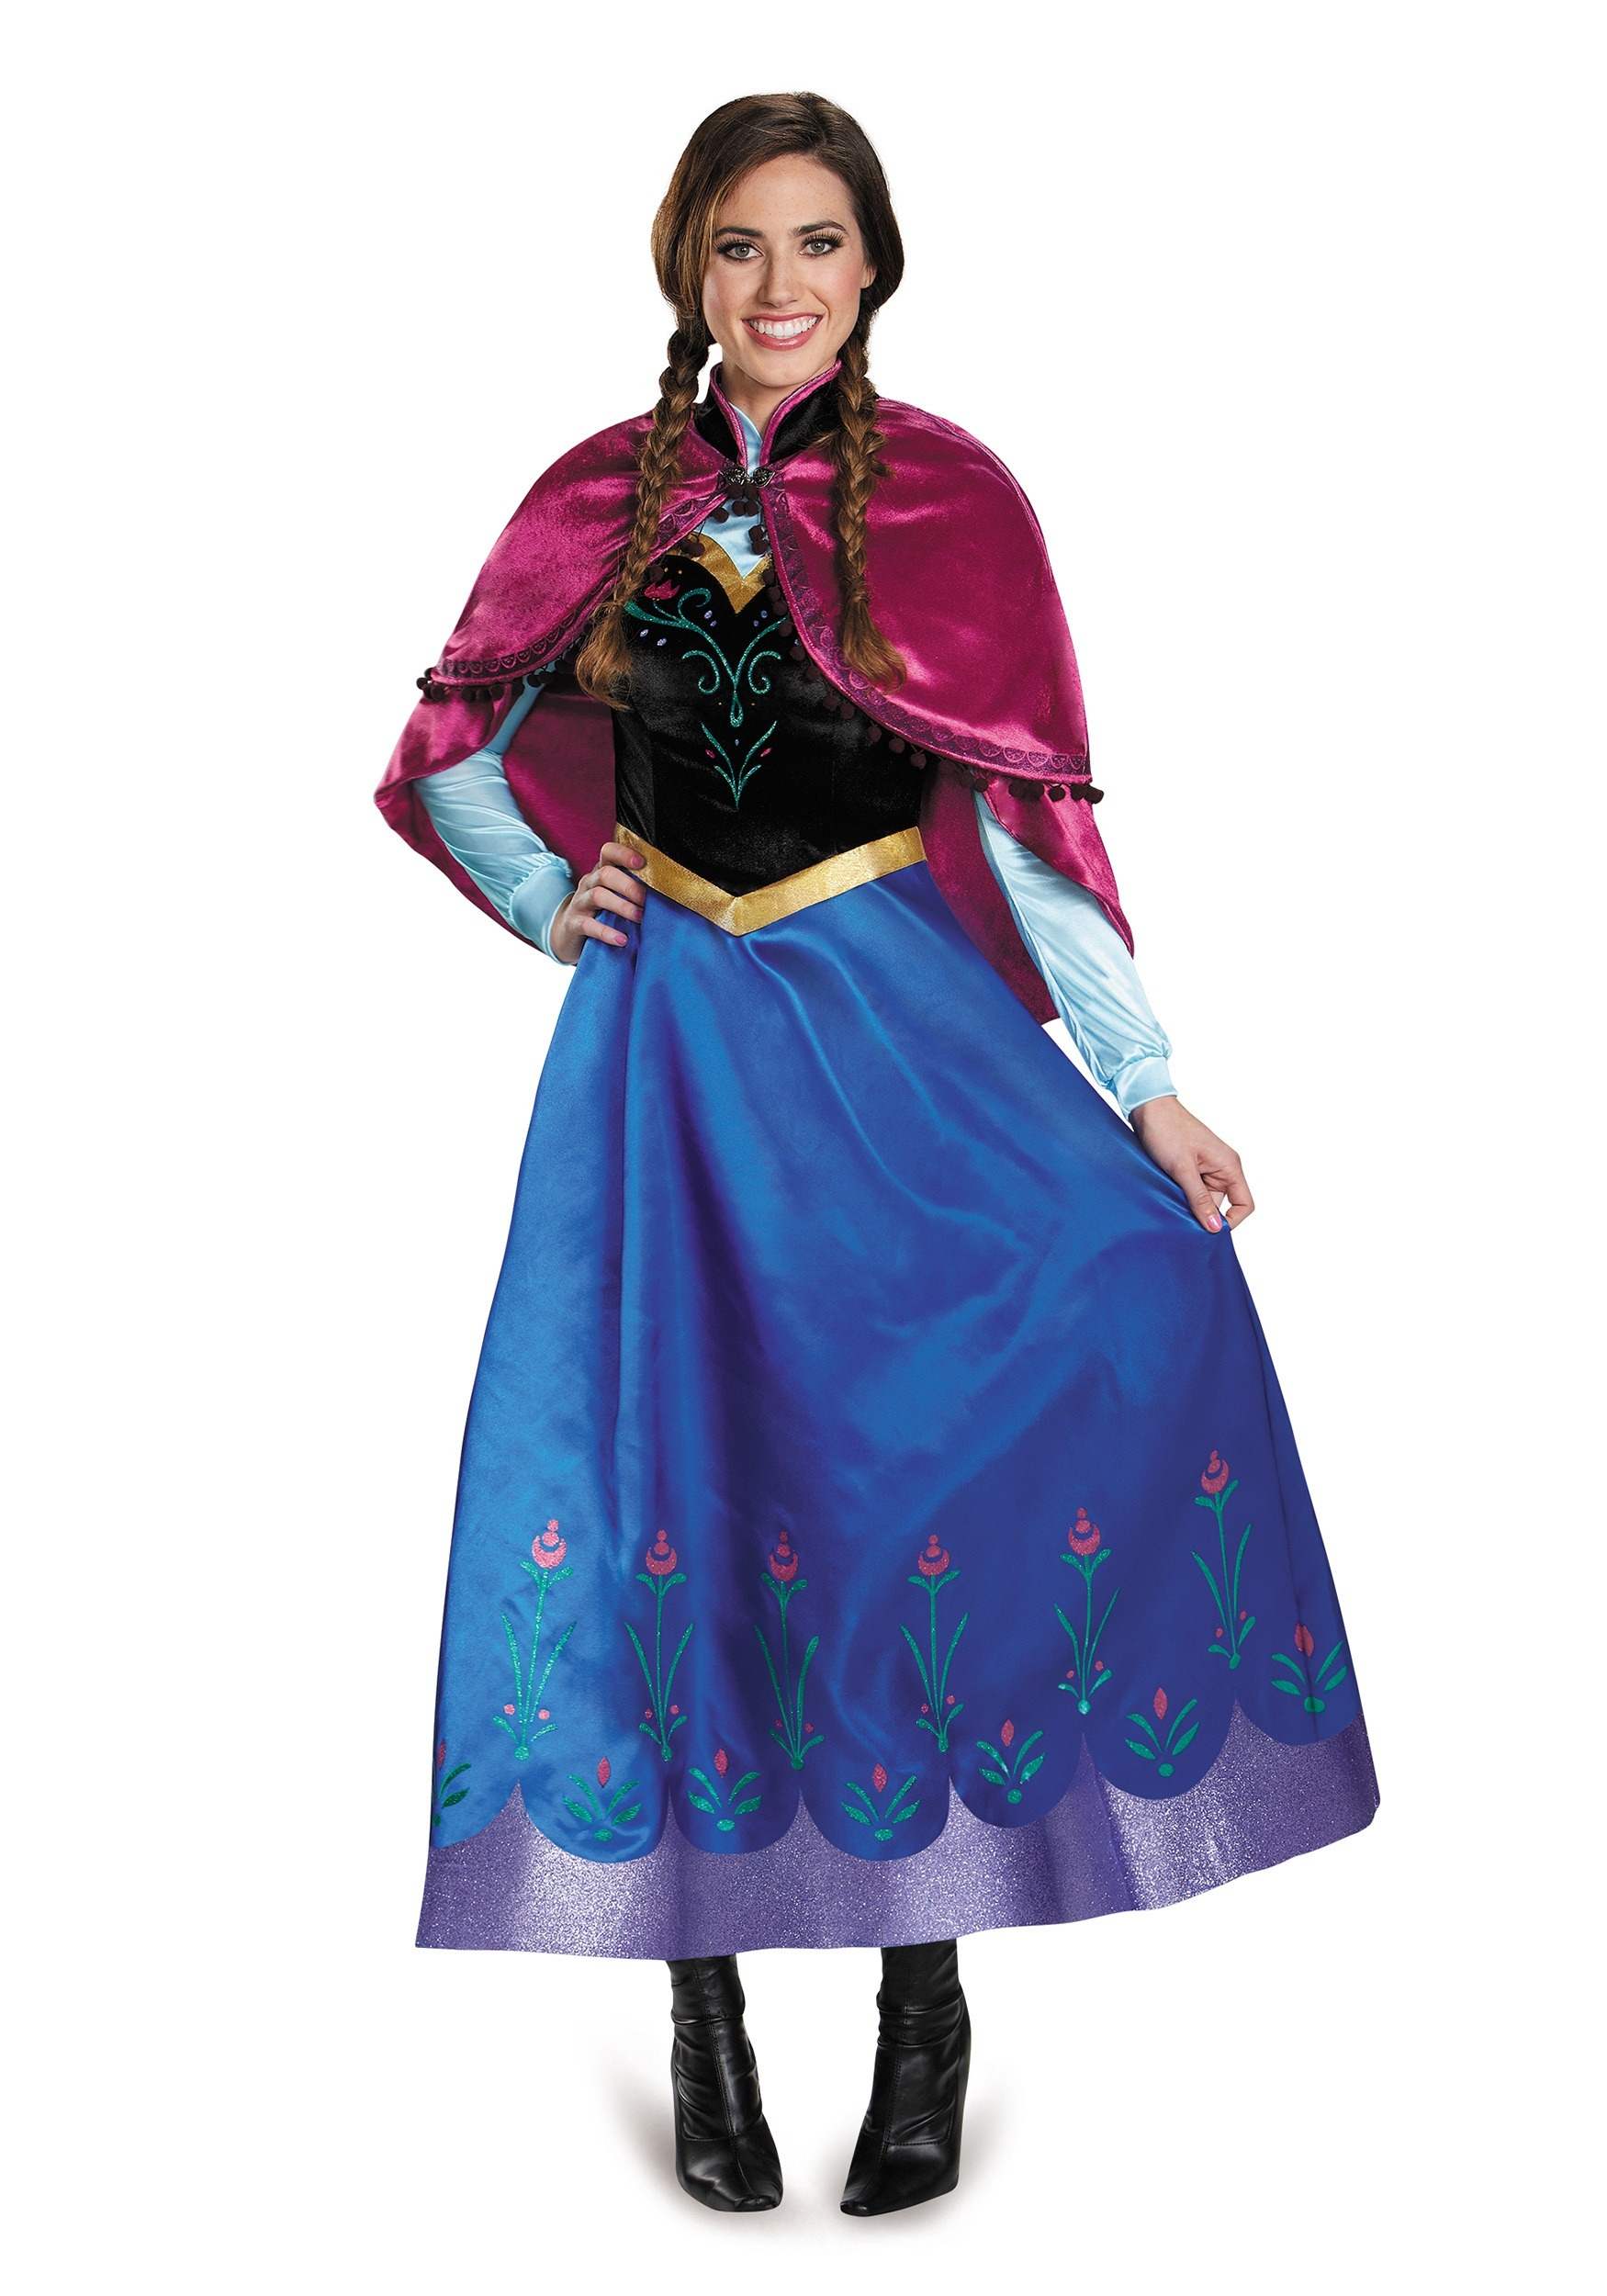 Frozen Traveling Anna Prestige Adult Costume